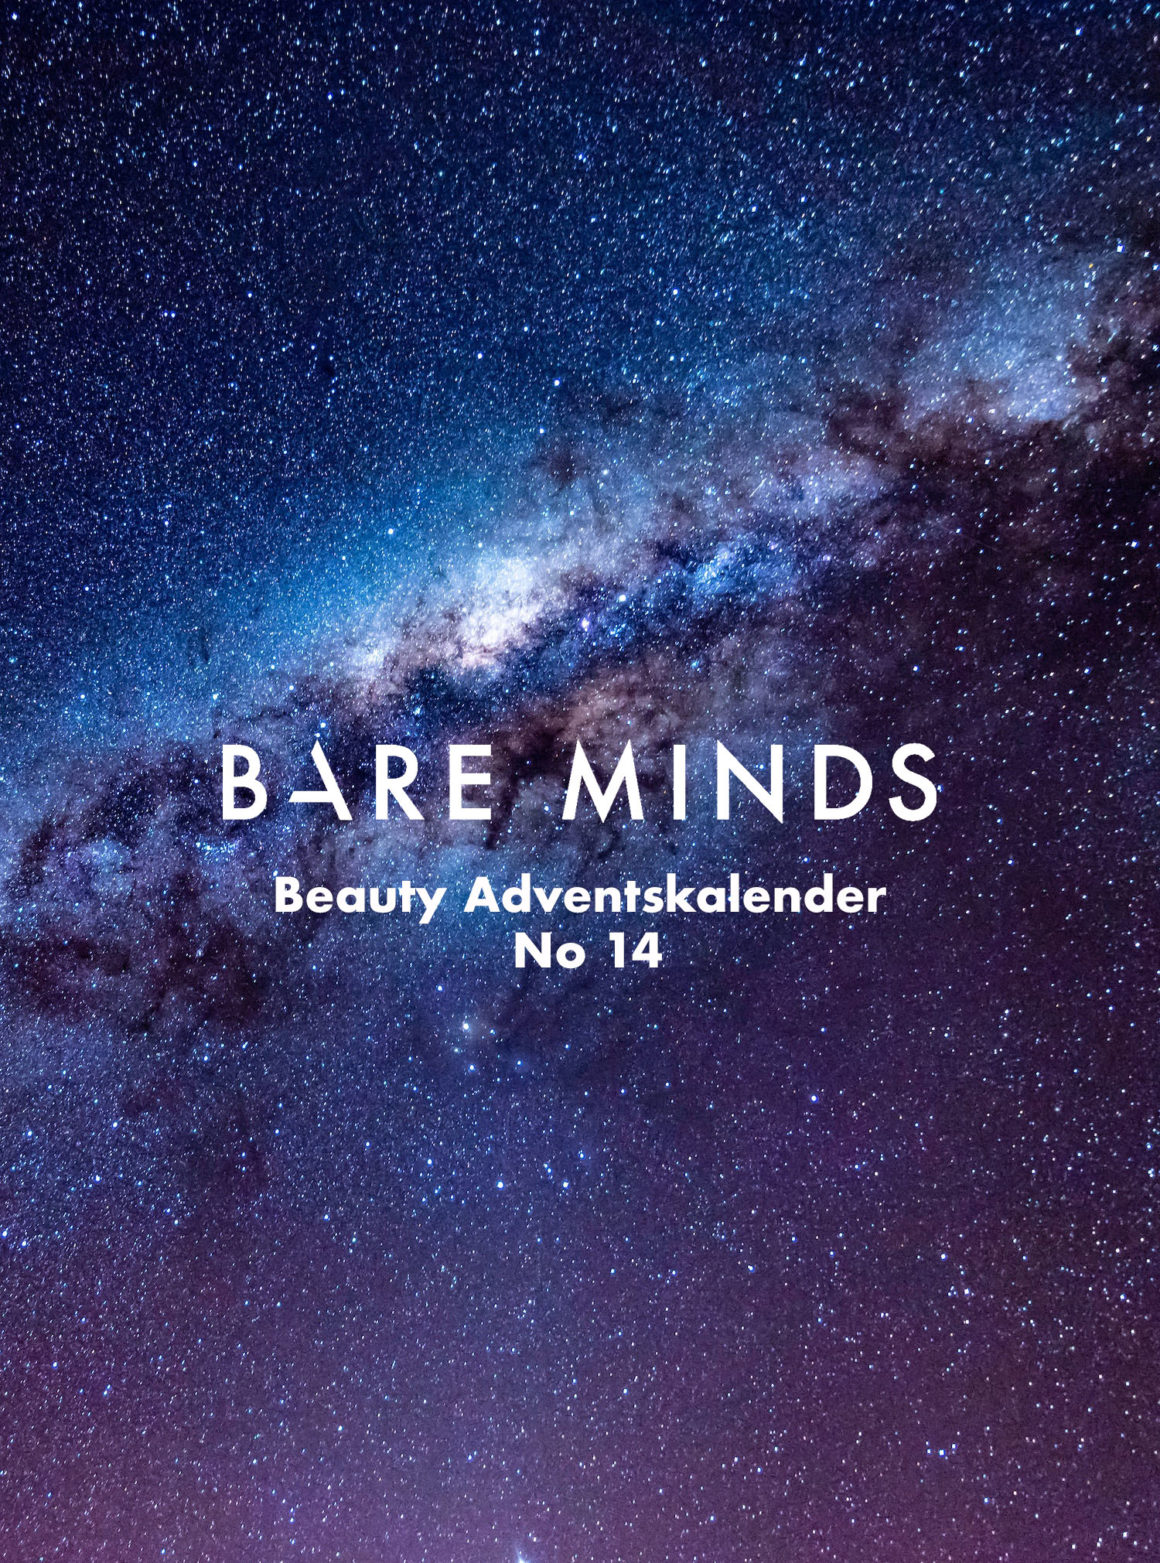 Bare Minds Beauty Adventskalender graham-holtshausen-1080902-unsplash Kopie